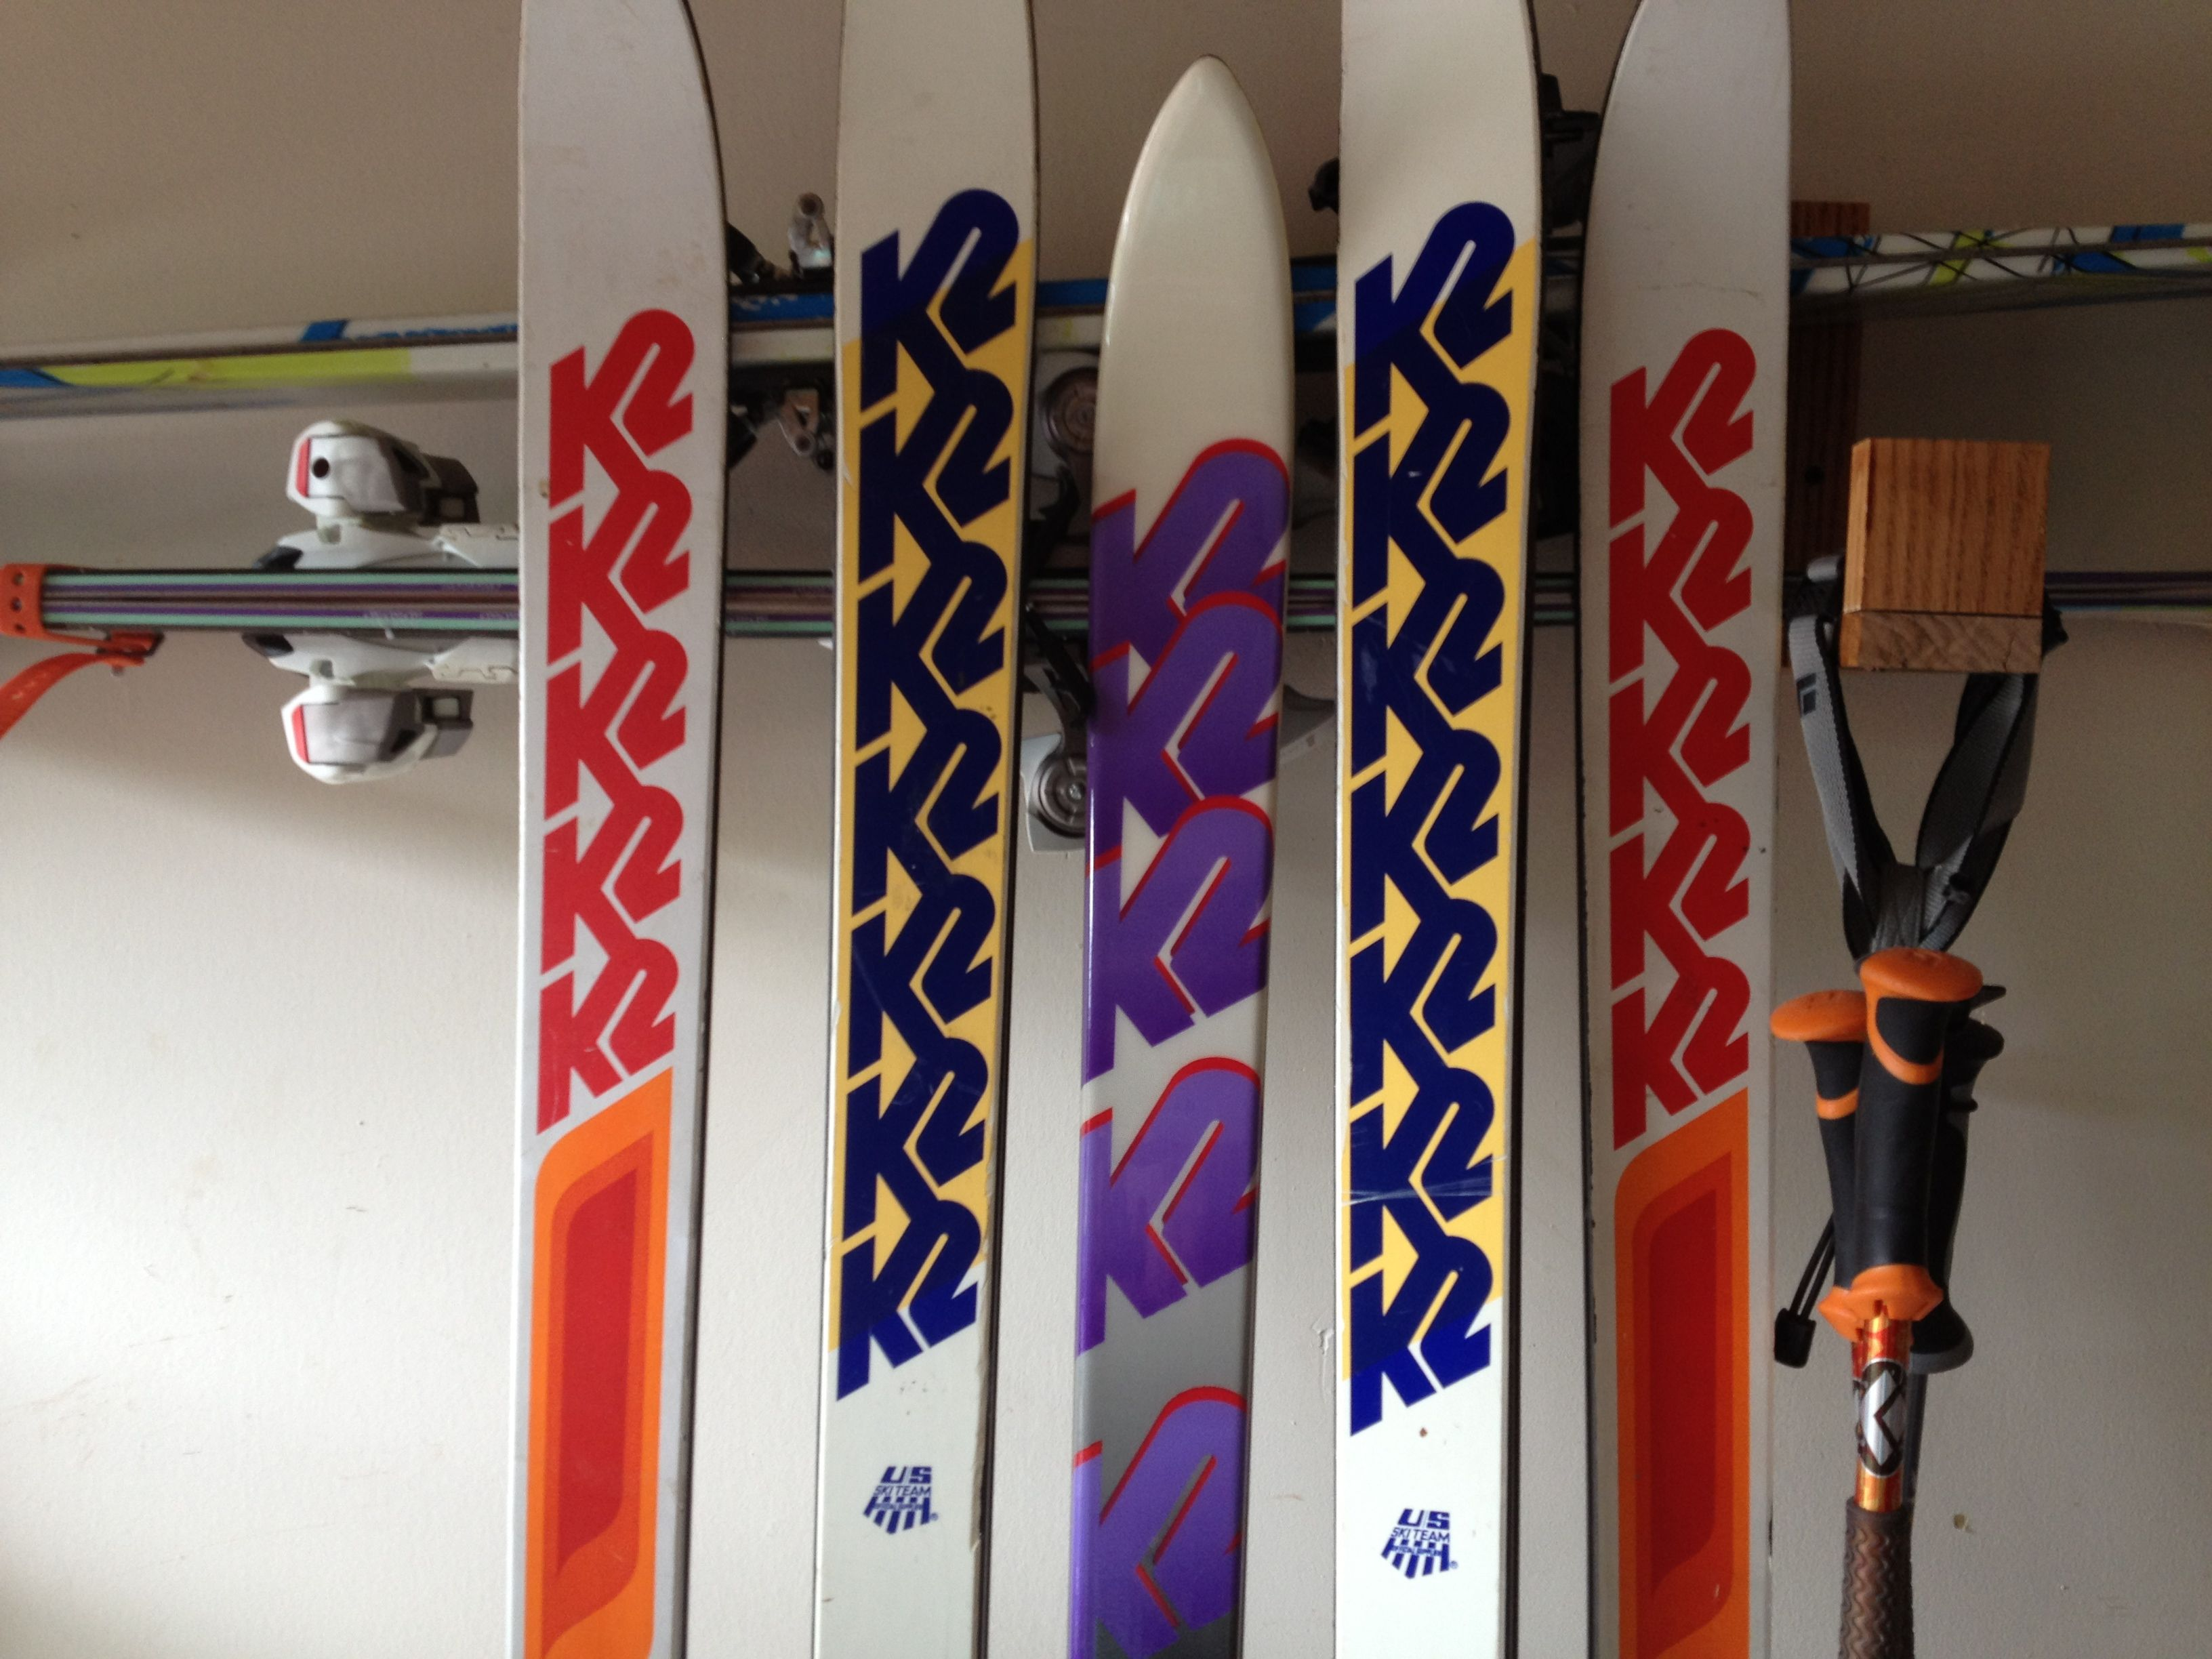 You Have To Select Your Skis.